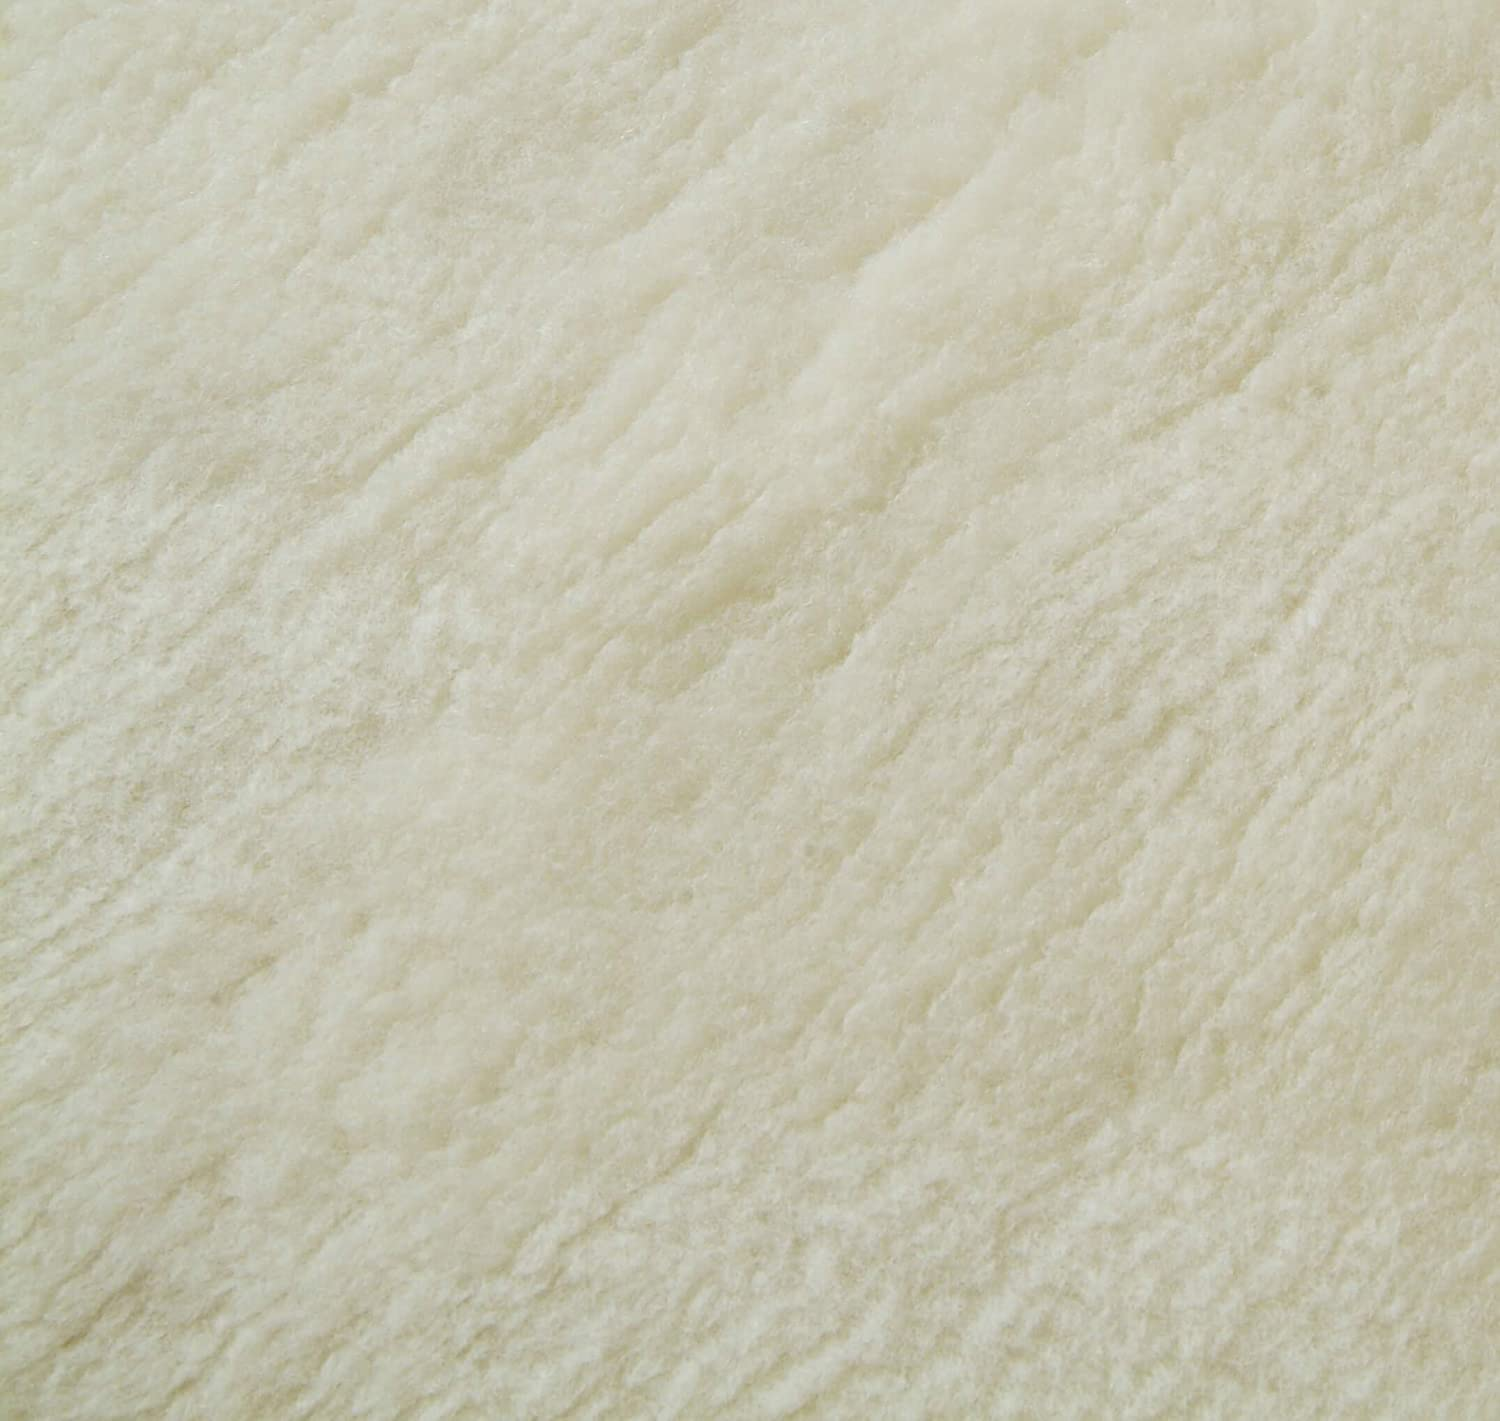 Holy Lamb Organics Happy Lamb Fleece Mattress Topper – Queen